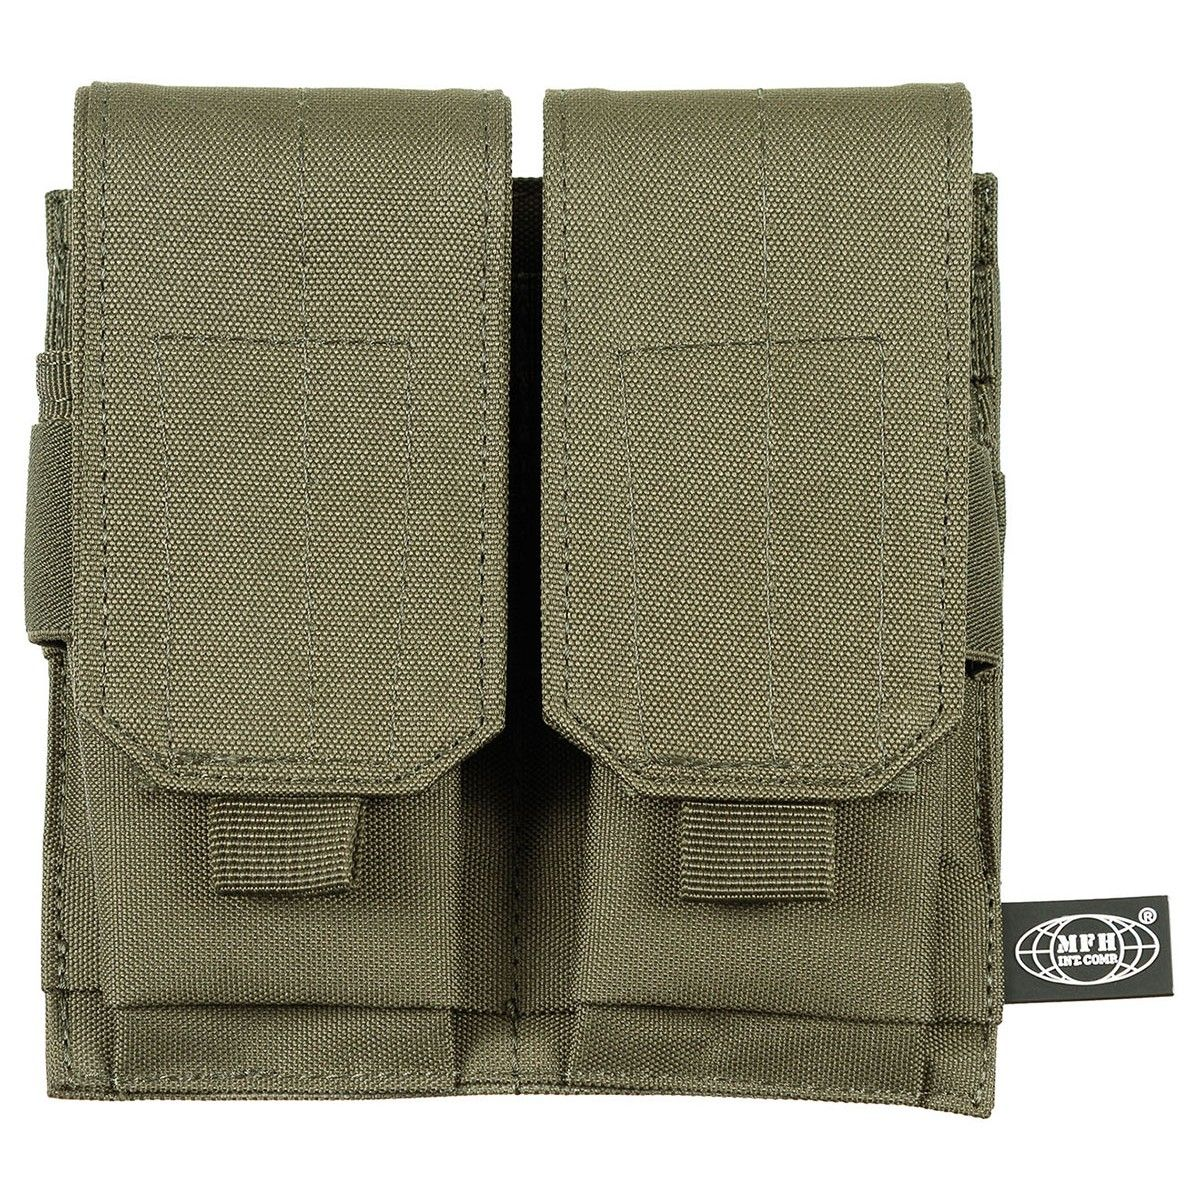 Mfh M4 M16 Double Magazine Pouch Green